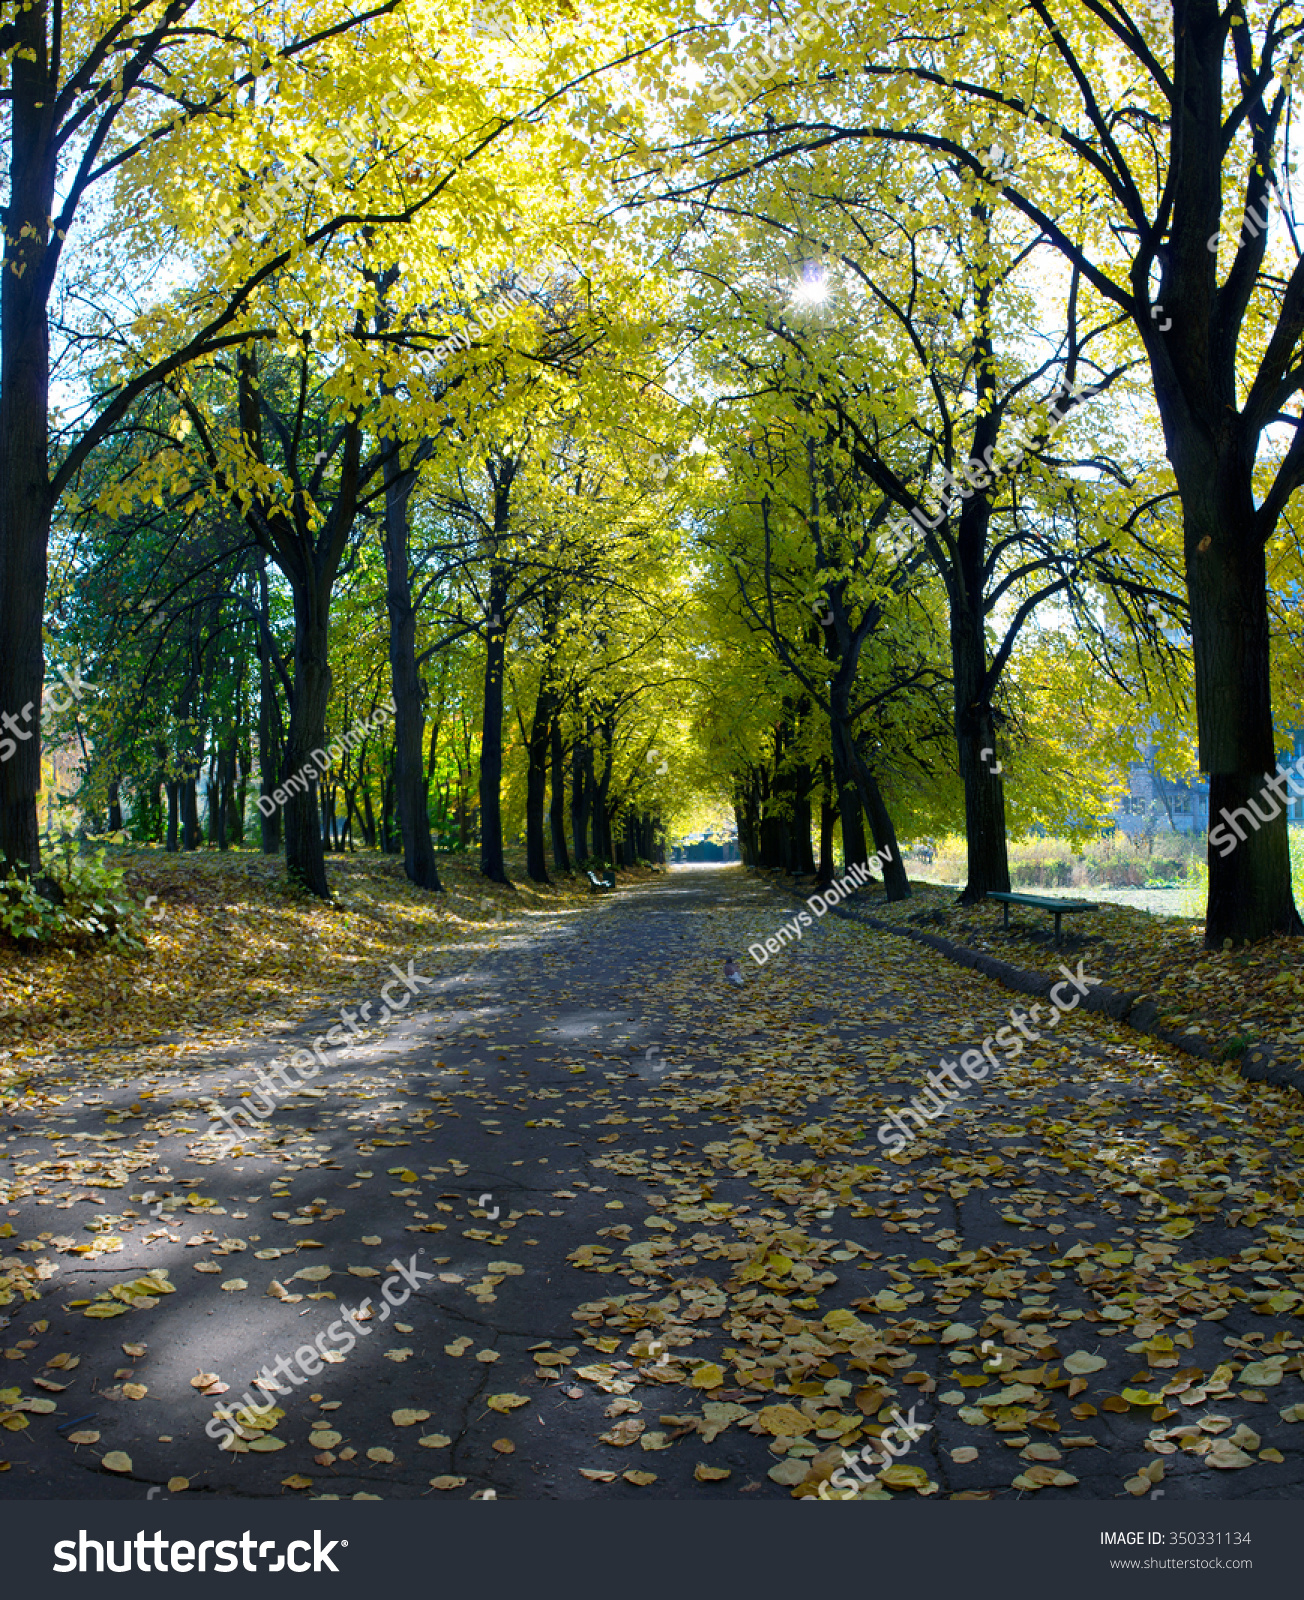 Cycle path lined with trees as leaves fall and cover the track in ...